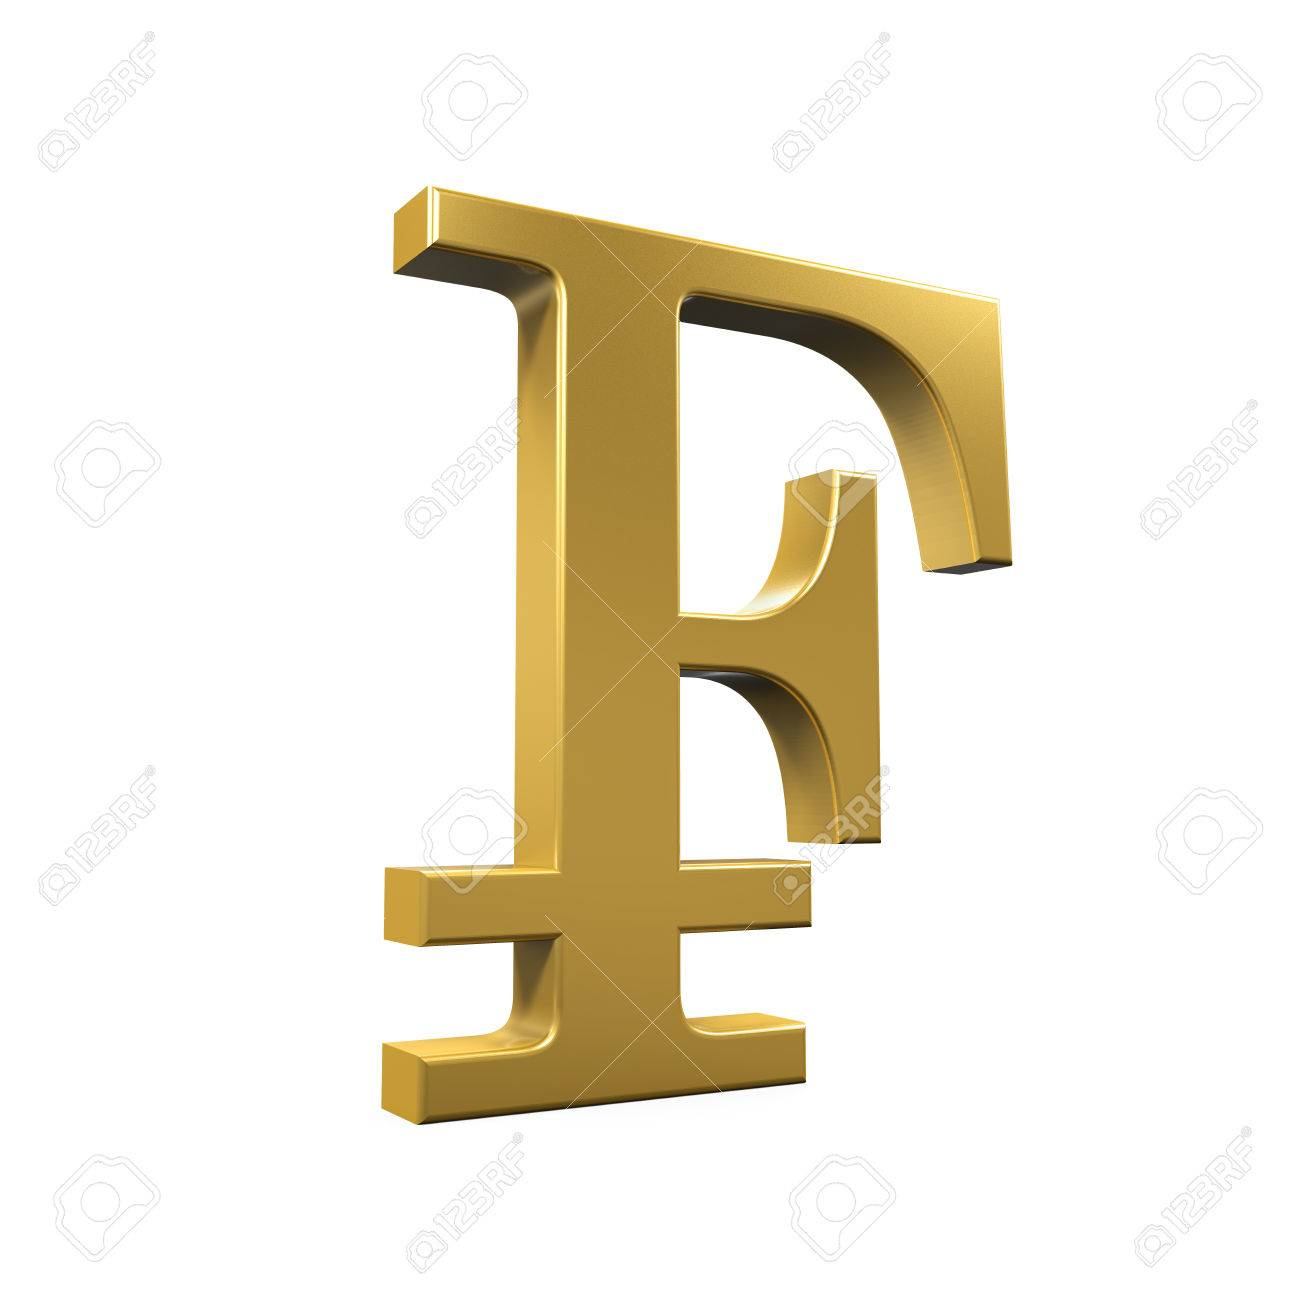 Swiss franc symbol stock photo picture and royalty free image swiss franc symbol stock photo 35815201 buycottarizona Images